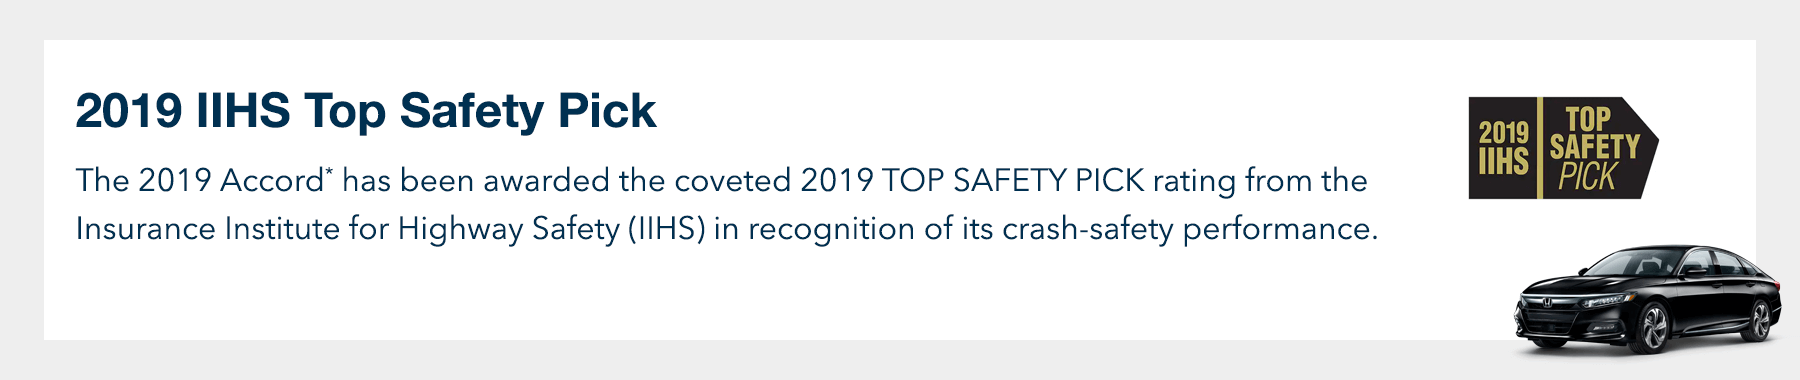 2019 Honda Accord IIHS Top Safety Pick Slider